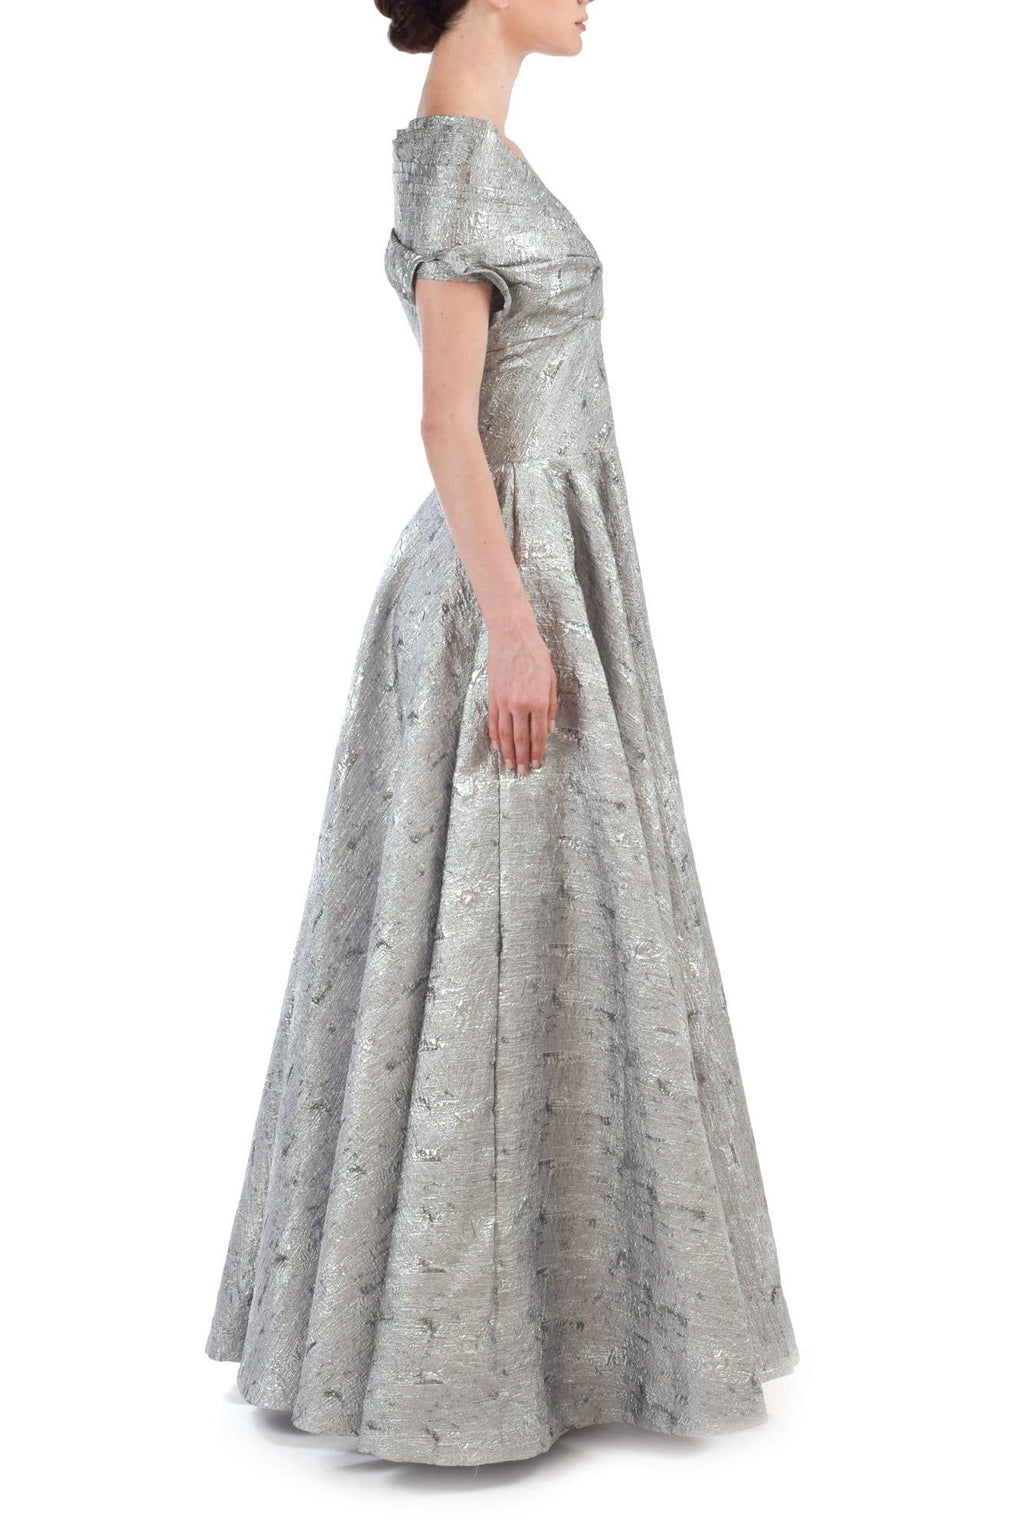 Silver Jaquard Gown - BYTRIBUTE